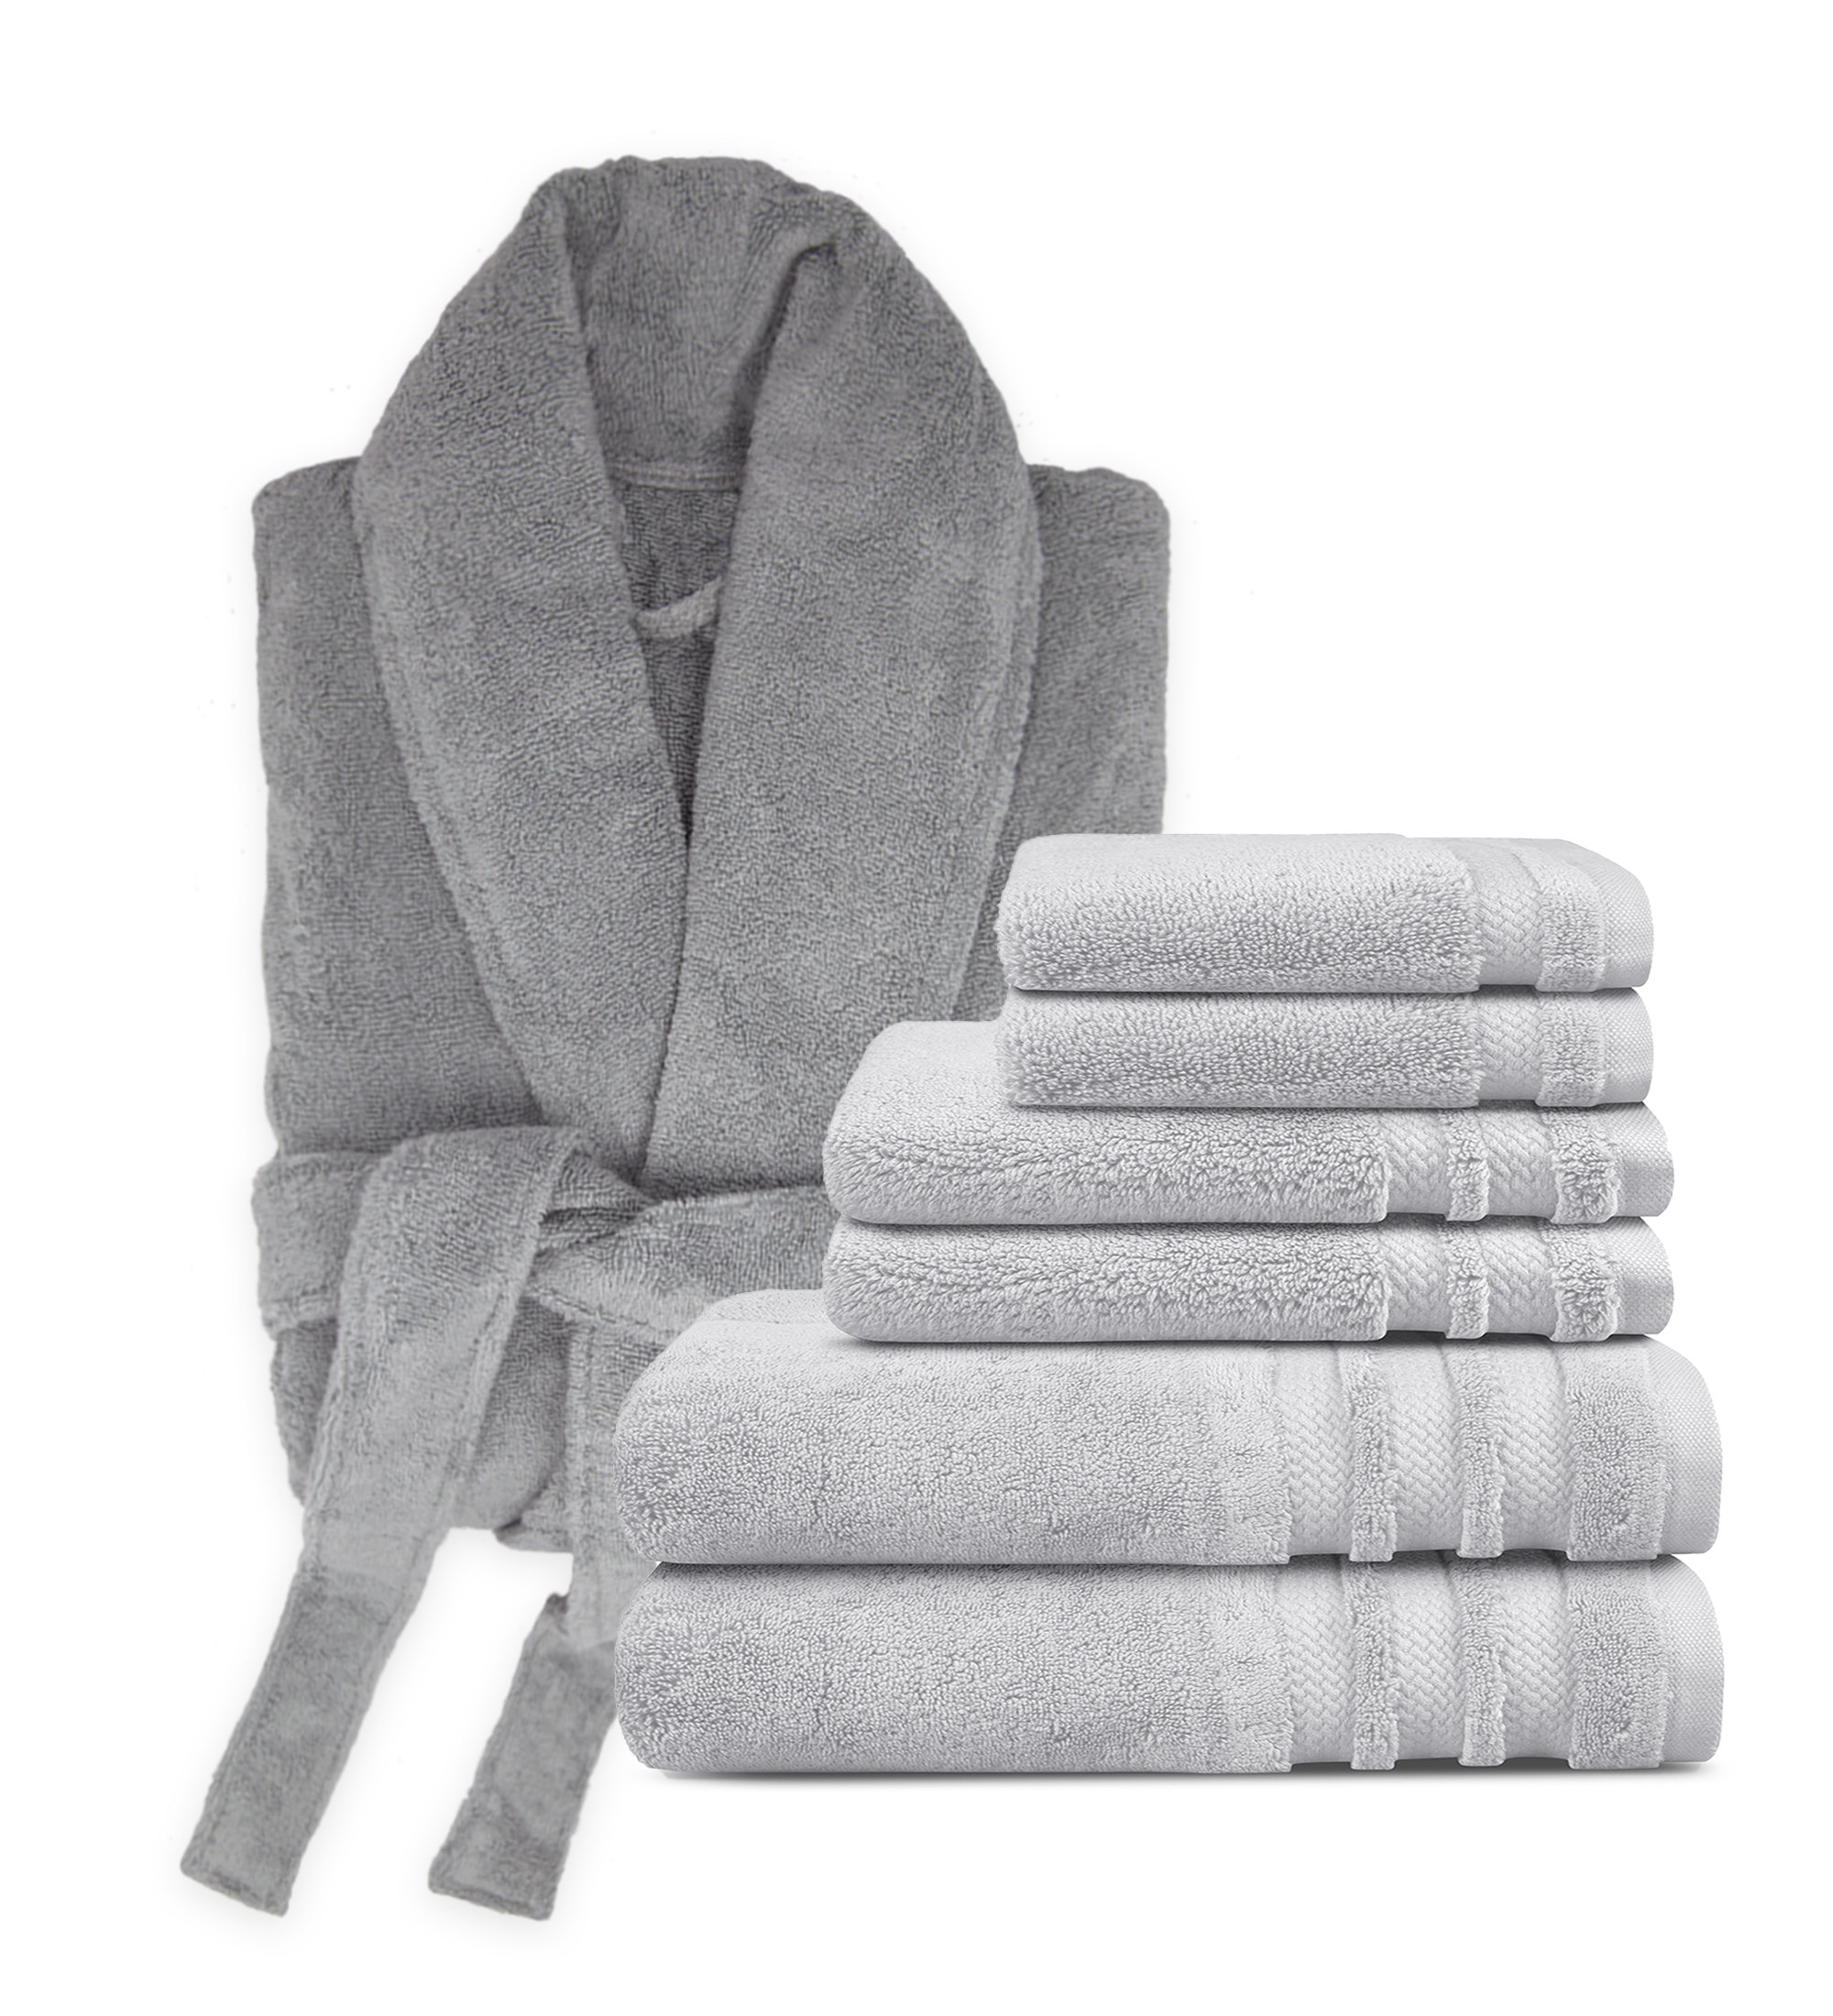 grey bathrobe with six grey towels folded and stacked next to it